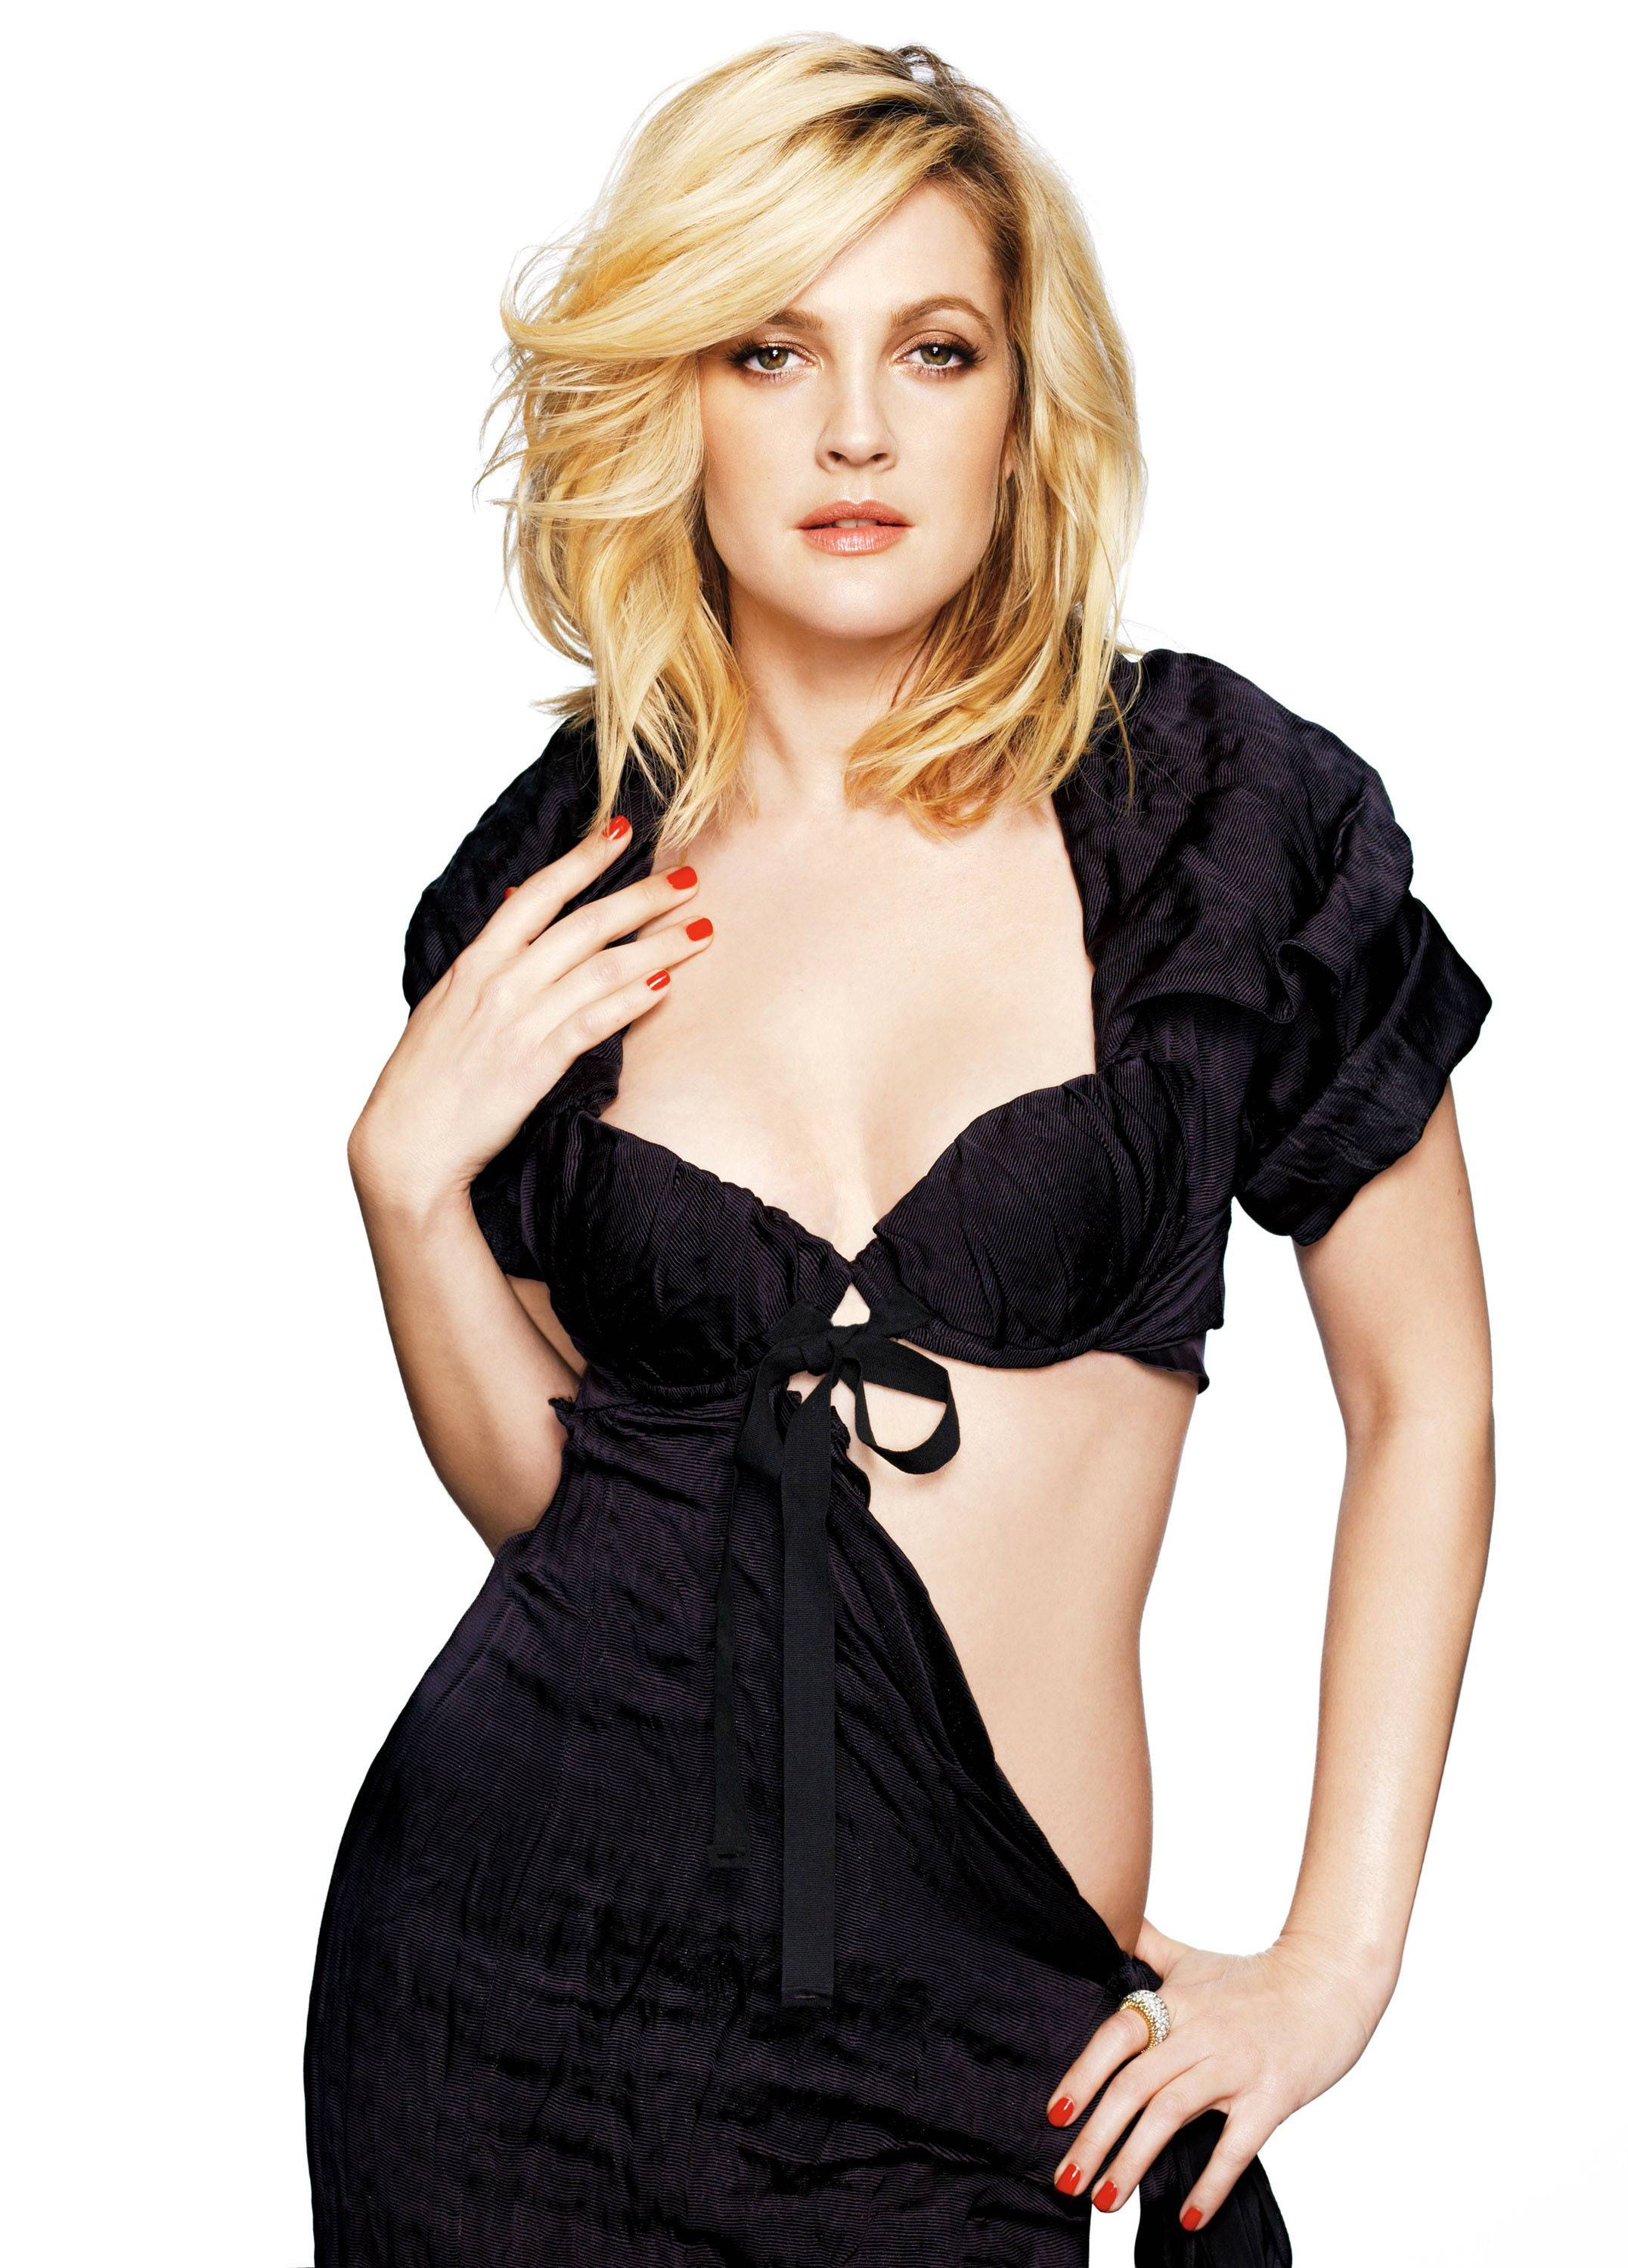 Drew Barrymore For mobile